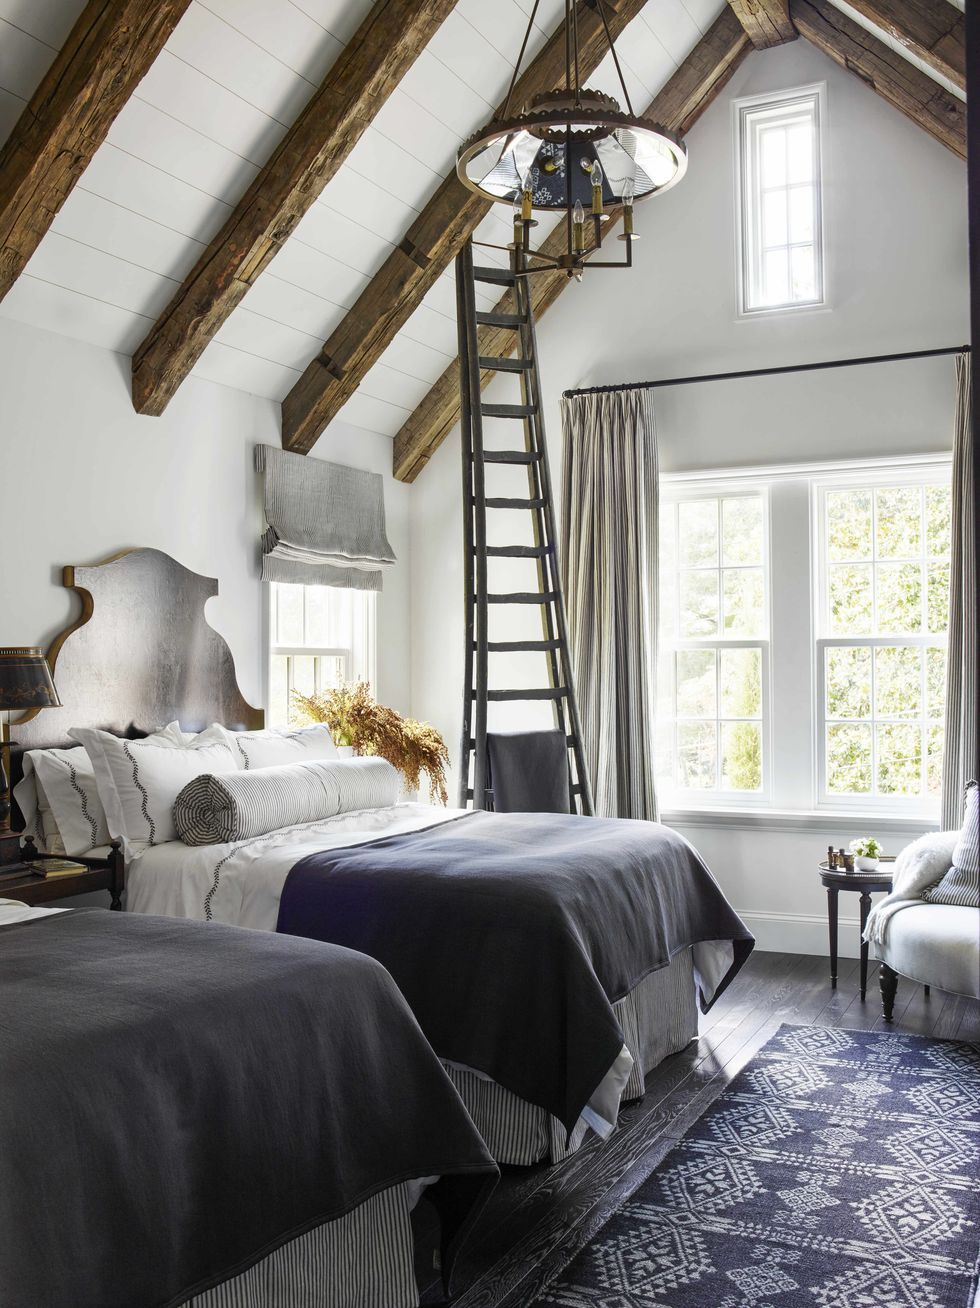 Pin by M'Lee on The Princess & The Pea House and home